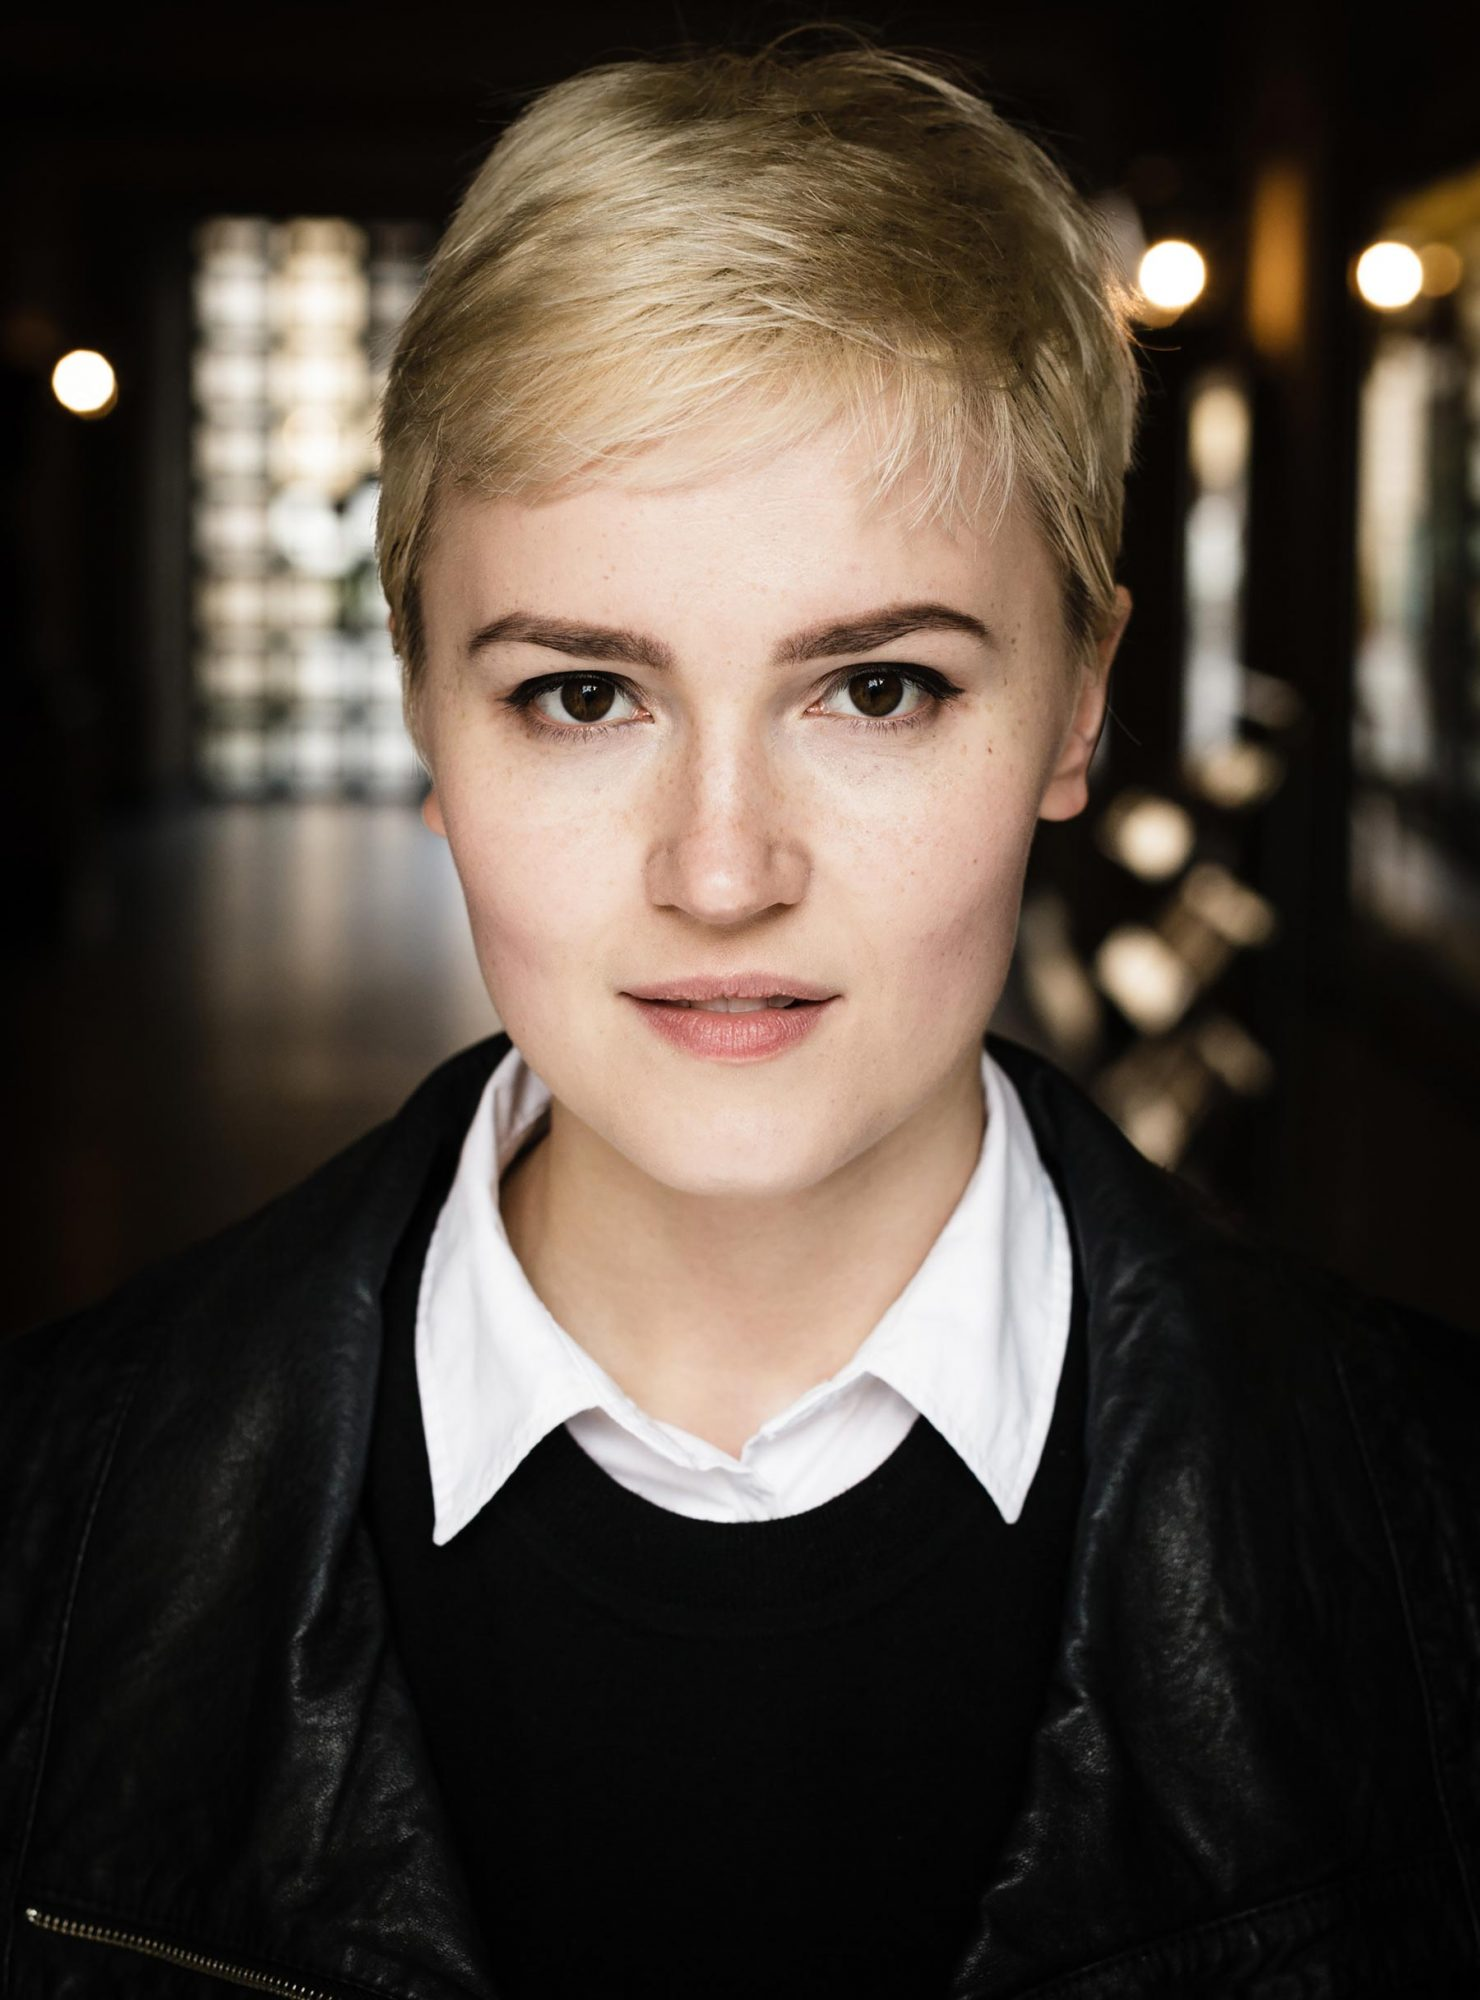 Veronica Roth Author photo CR: Reinaldo Coddou